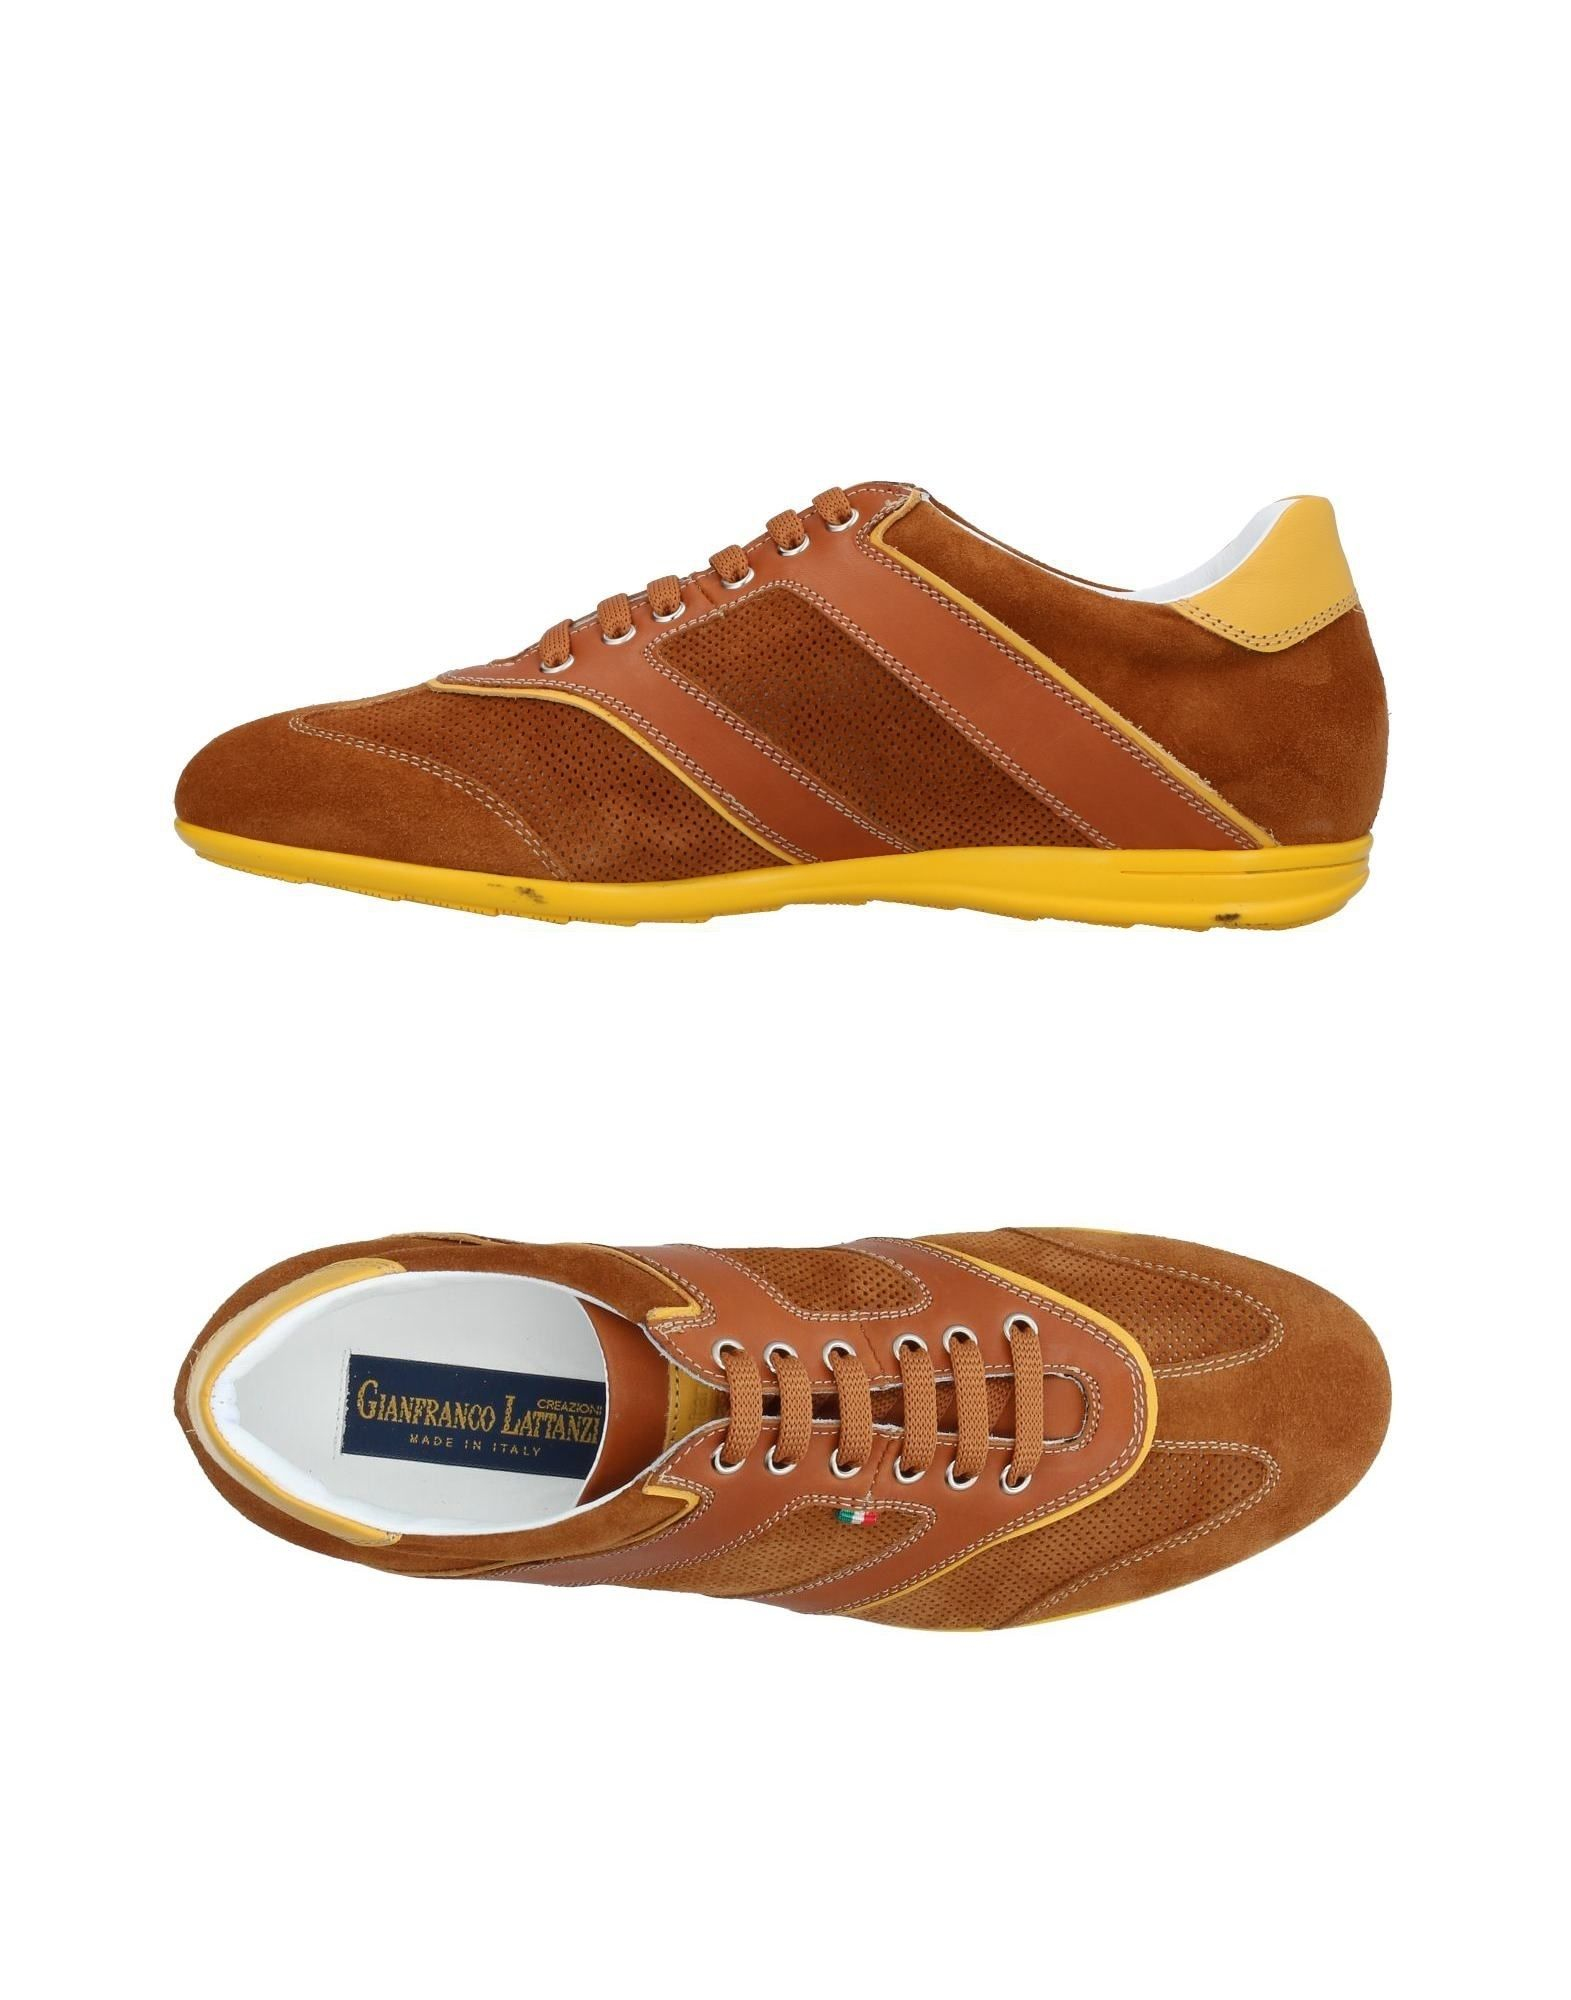 Sneakers Gianfranco Lattanzi Uomo - 11385435AH